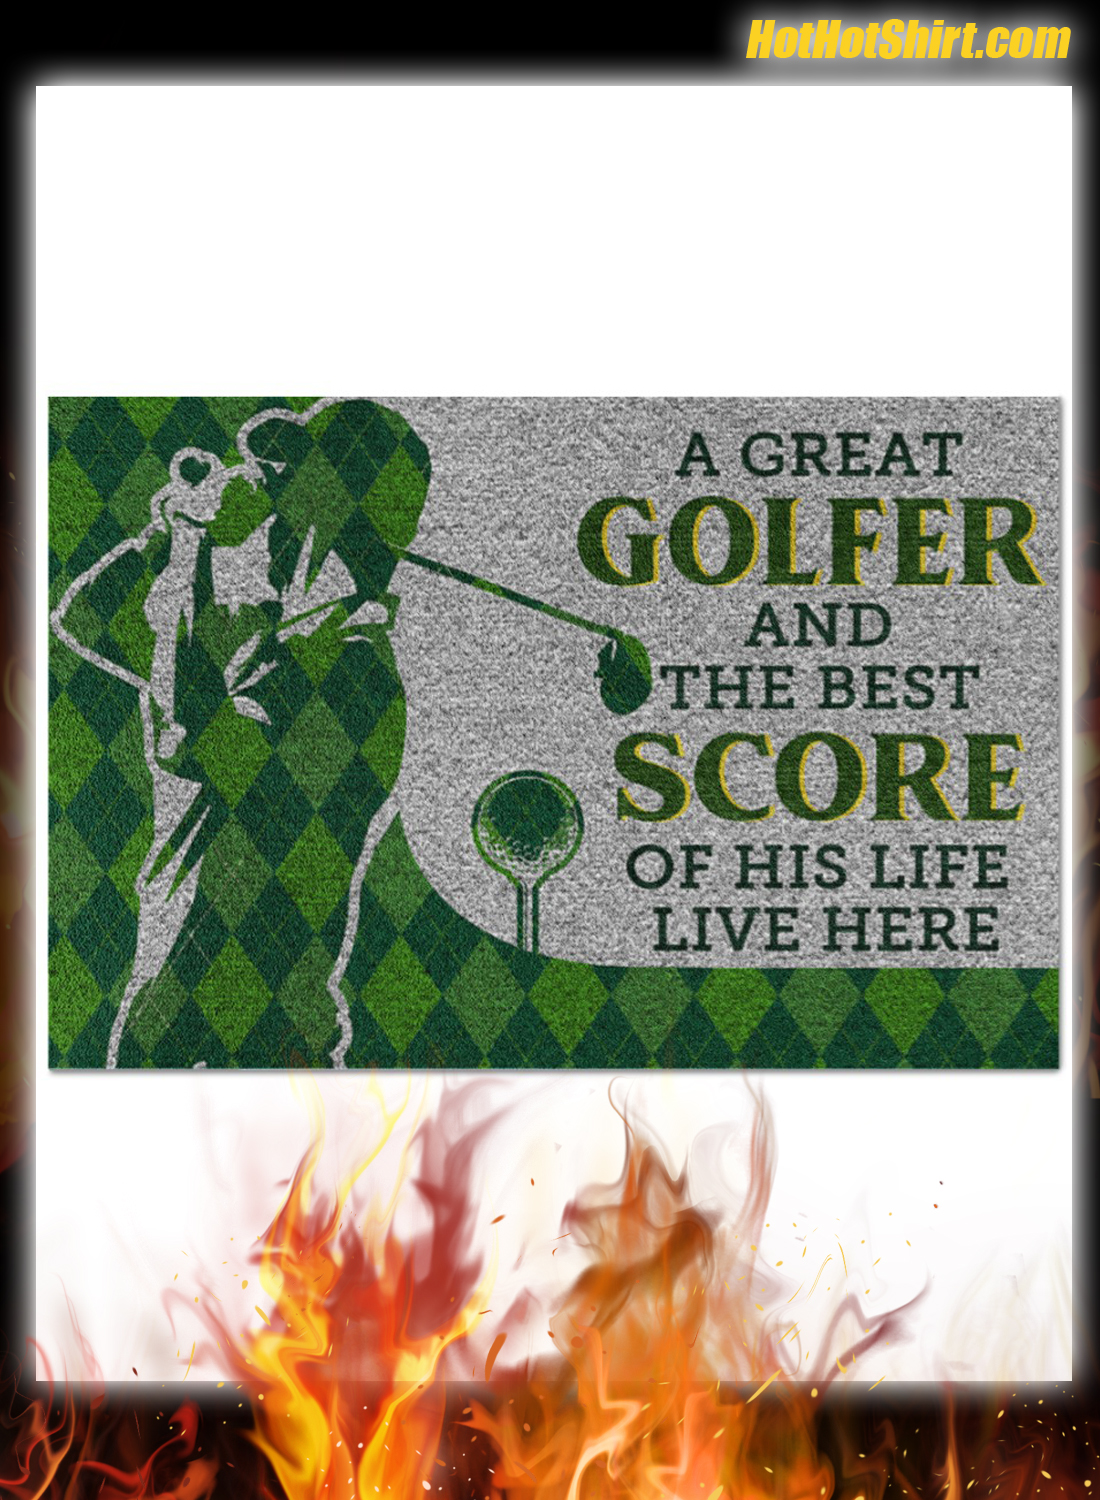 Personalized Name A Great Golfer And The Best Score Of His Life Live Here Doormat 3